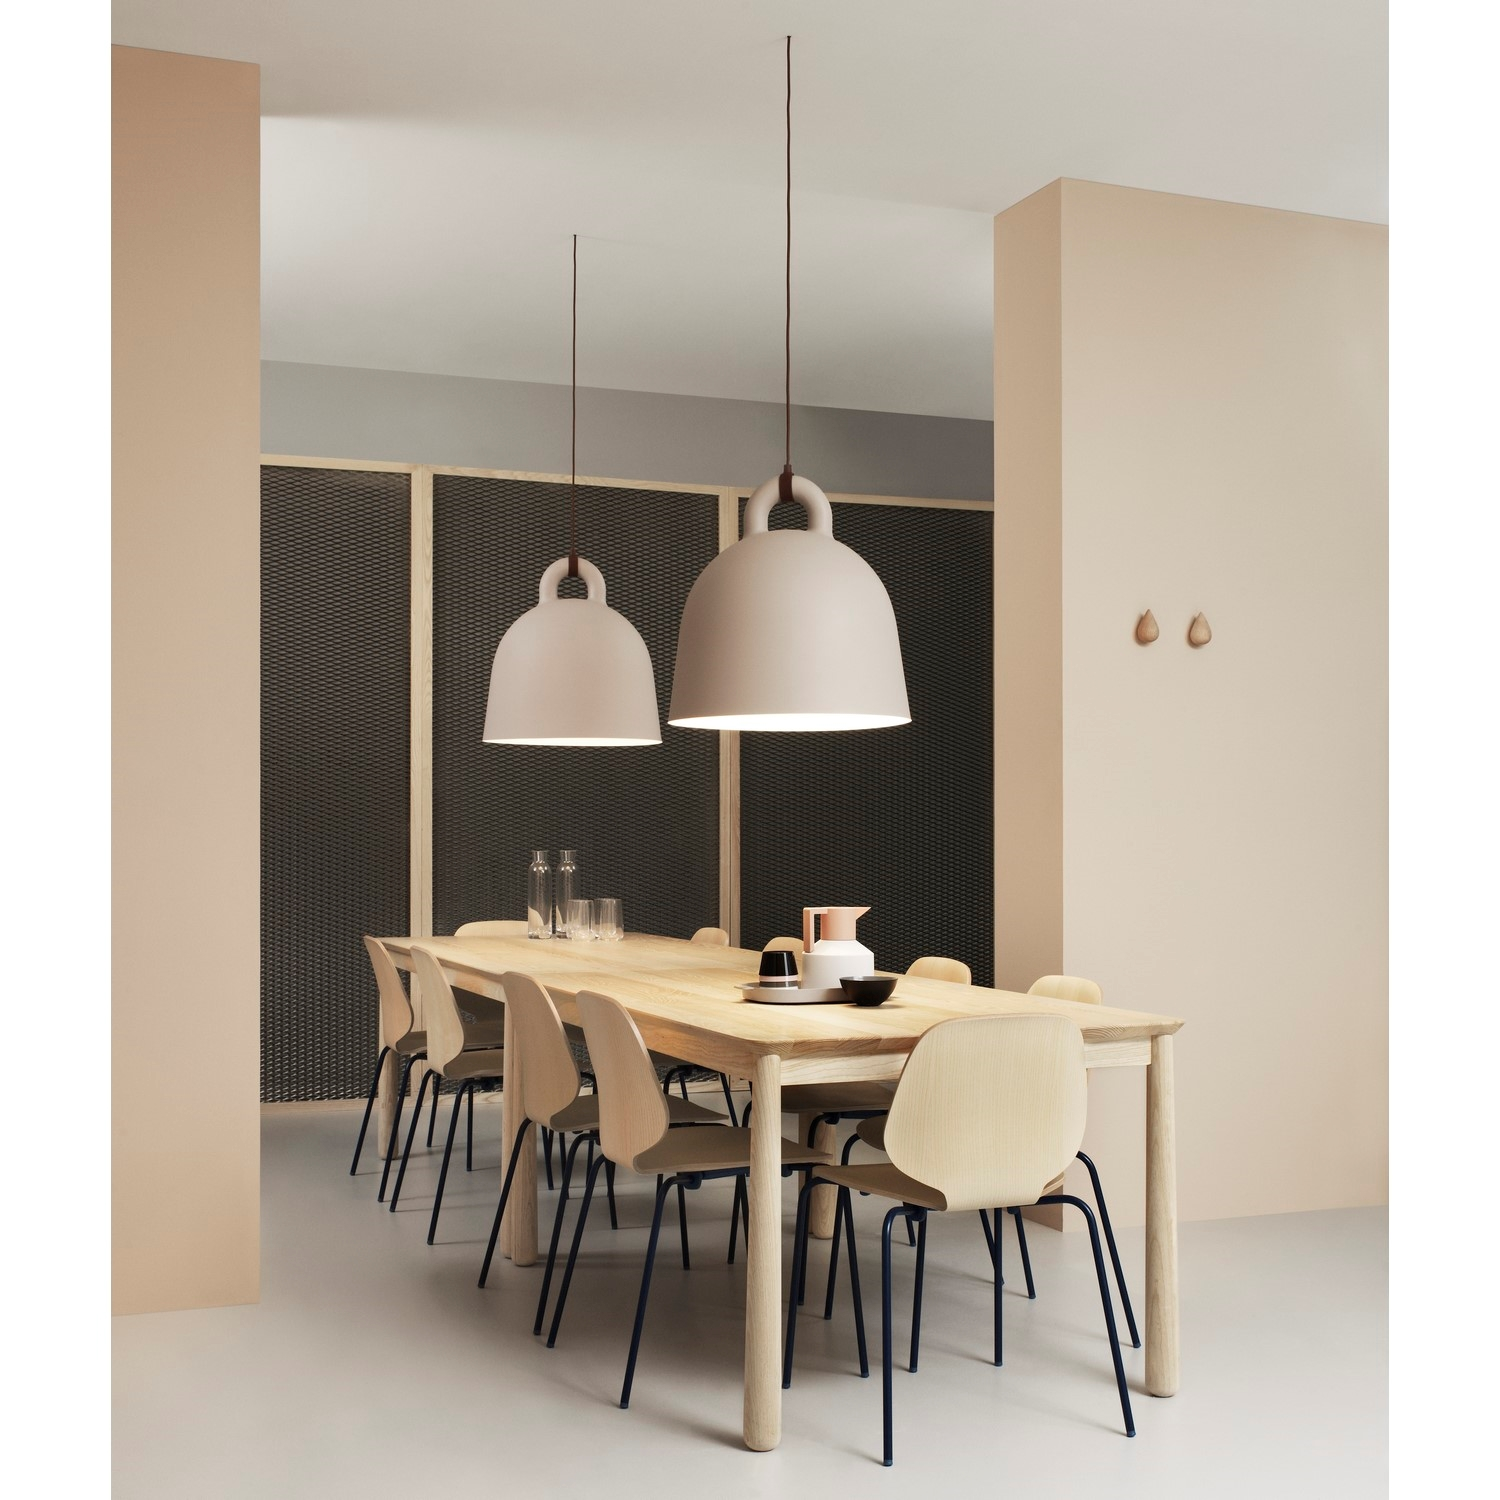 Seriøst Lampe Over Sofabord Hoyde - Home Ideas ZZ15